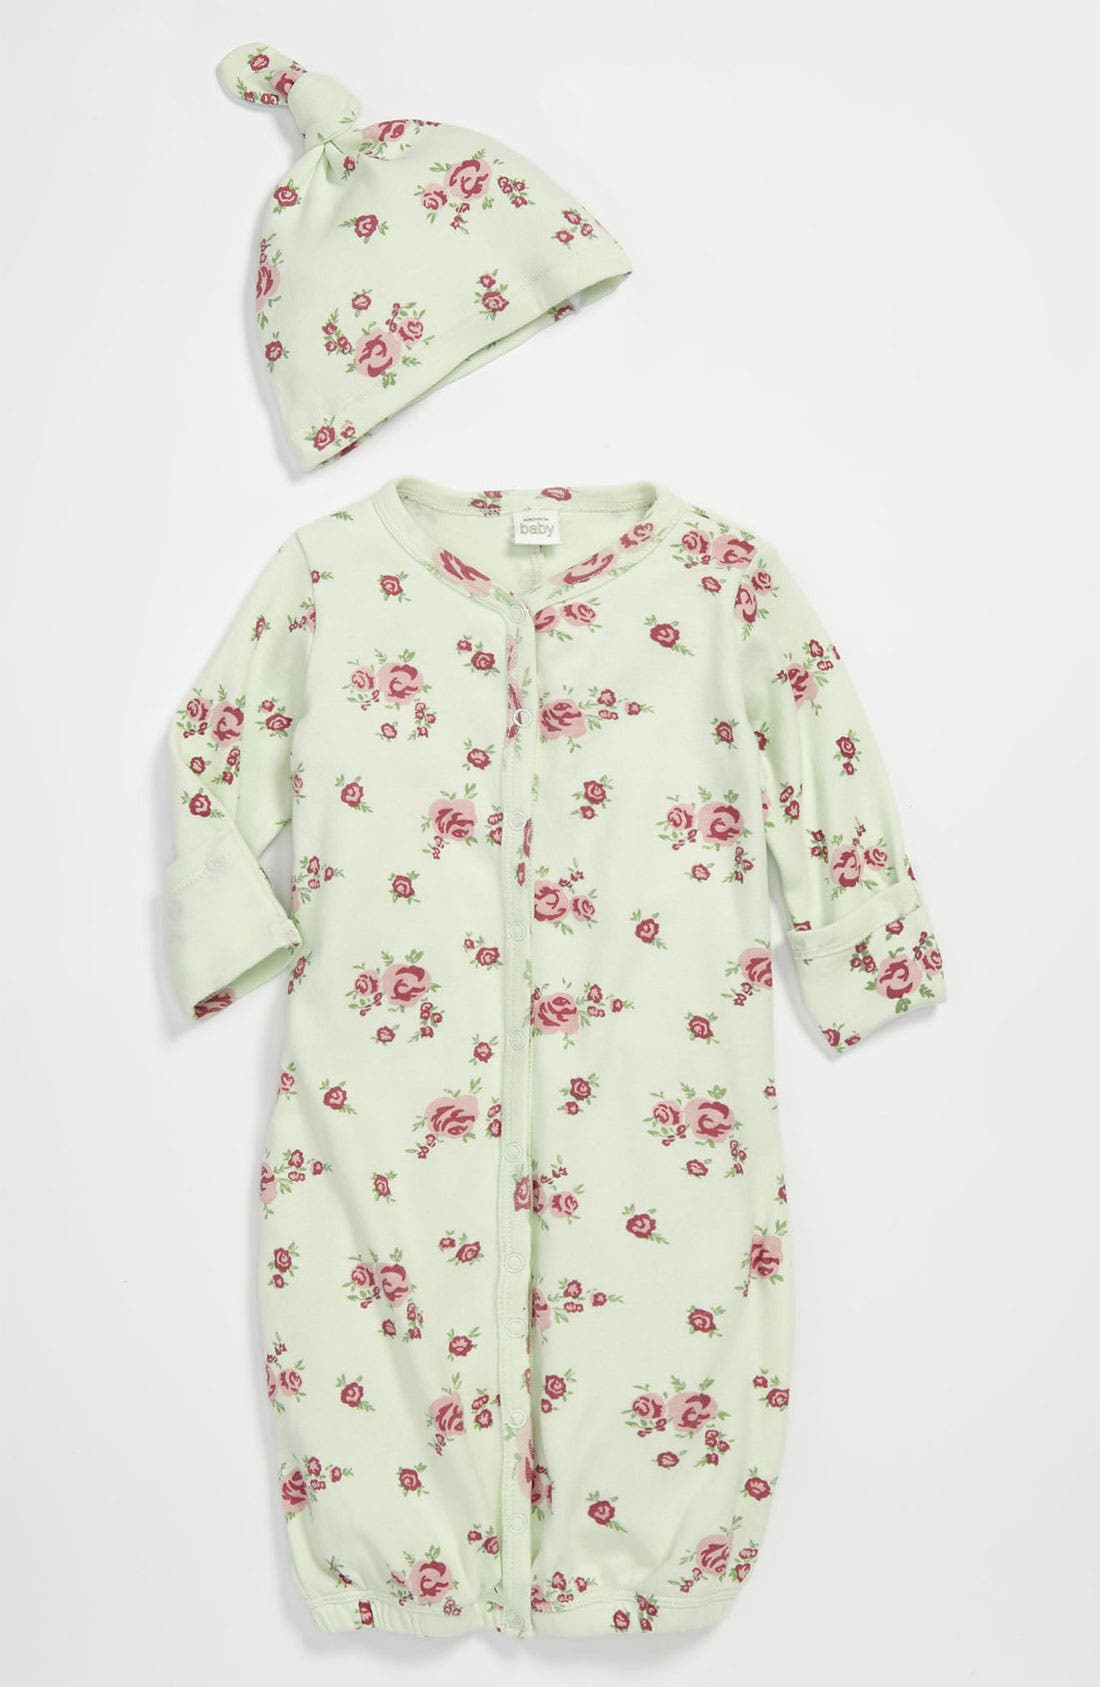 Alternate Image 1 Selected - Nordstrom Baby Convertible Gown & Hat (Baby)